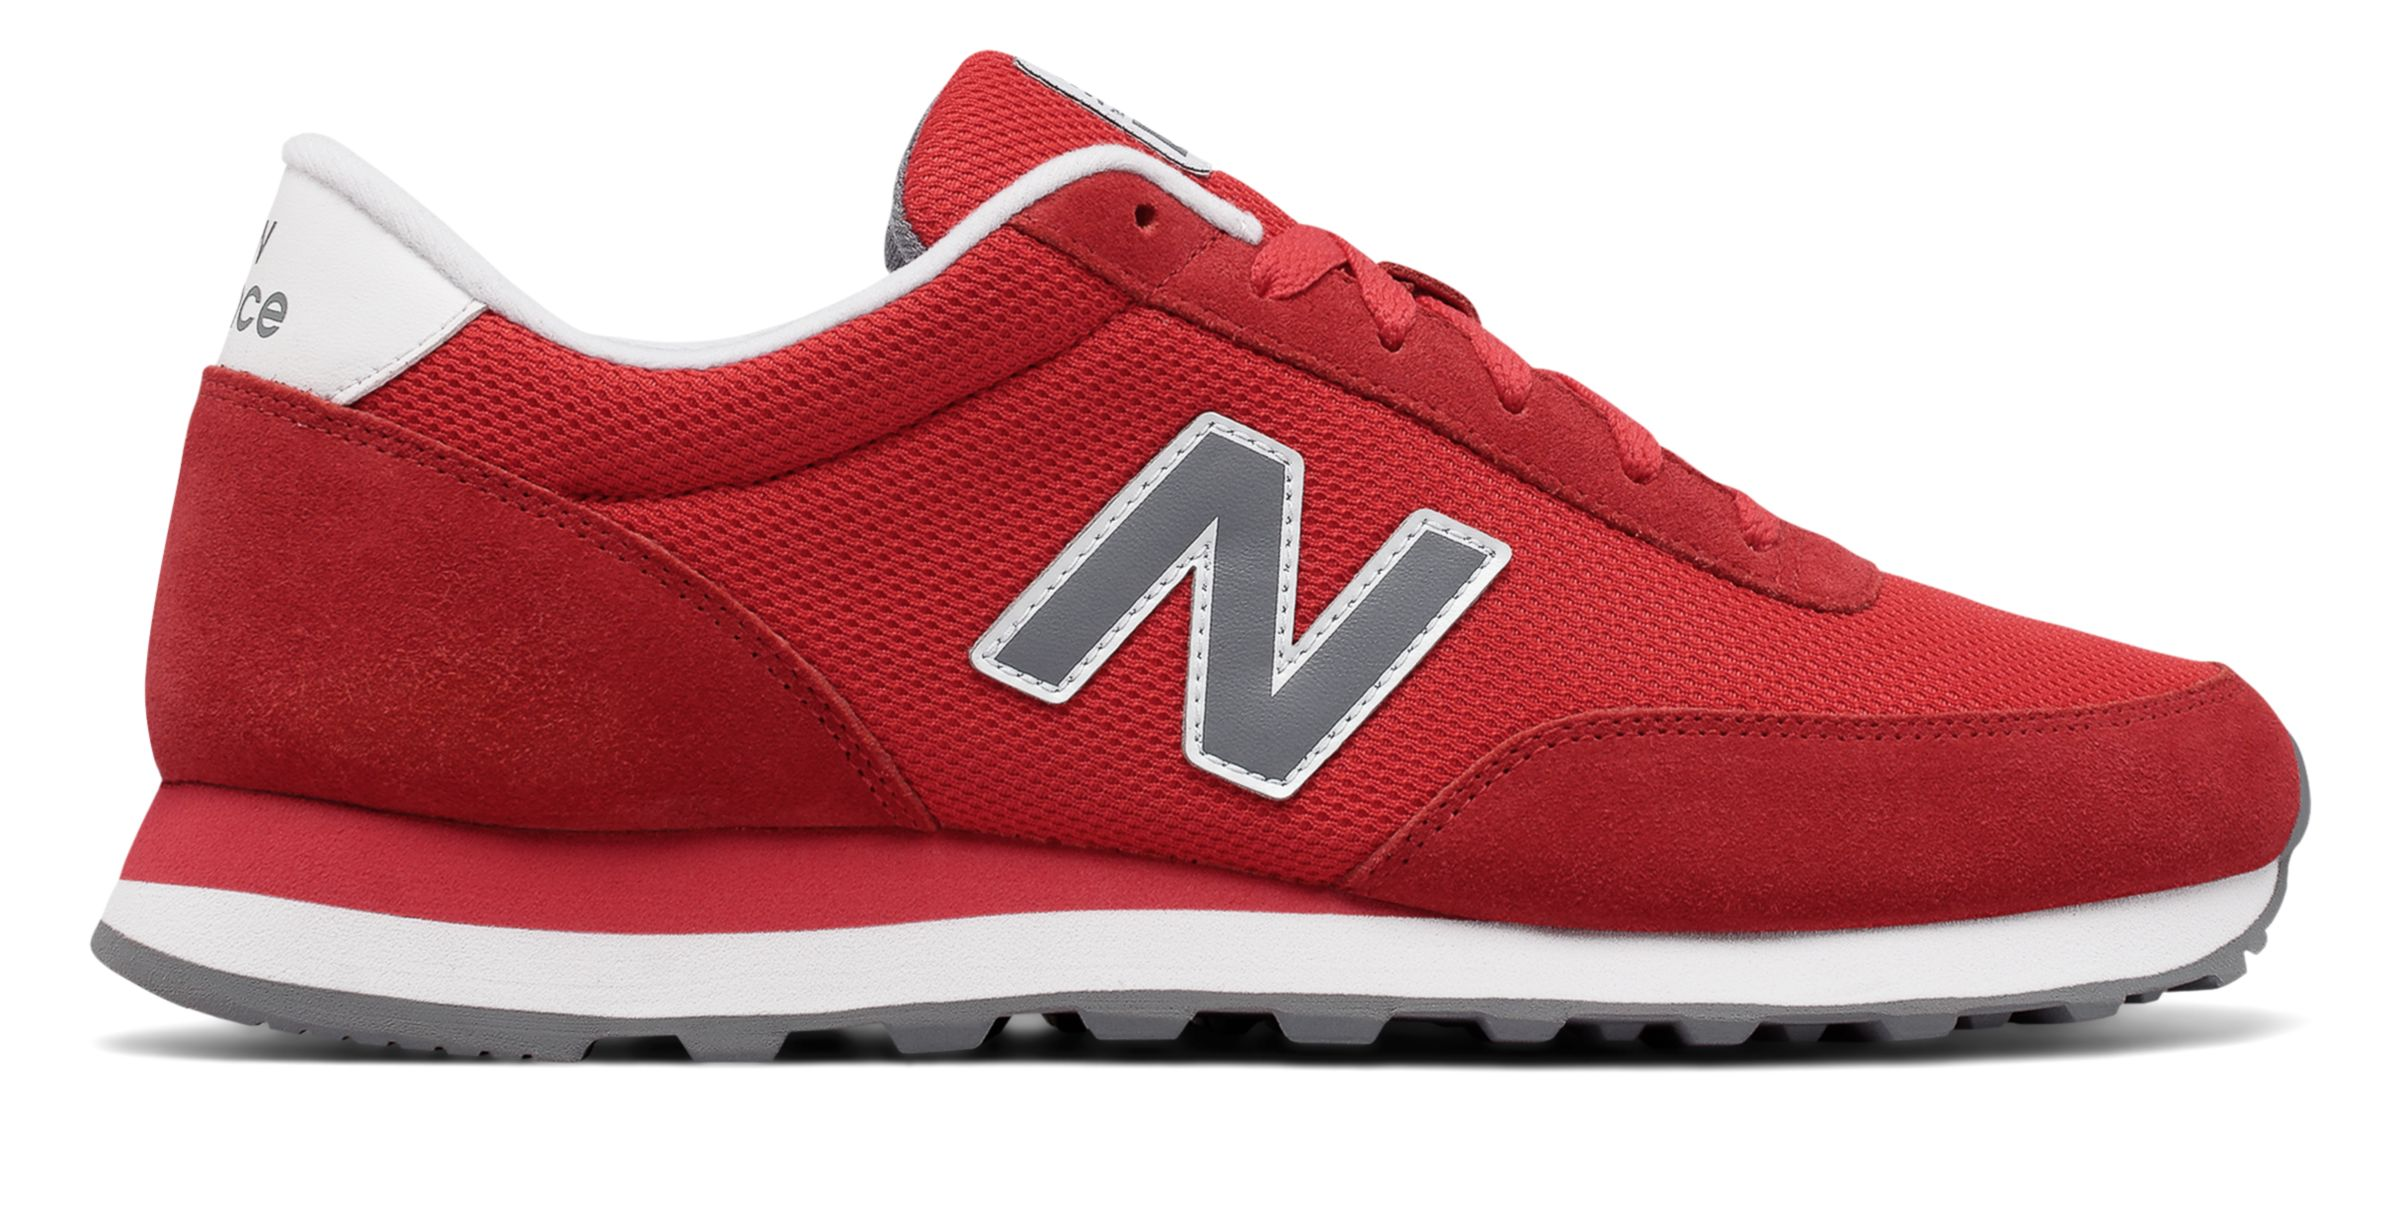 NB 501 Core, Red with Grey